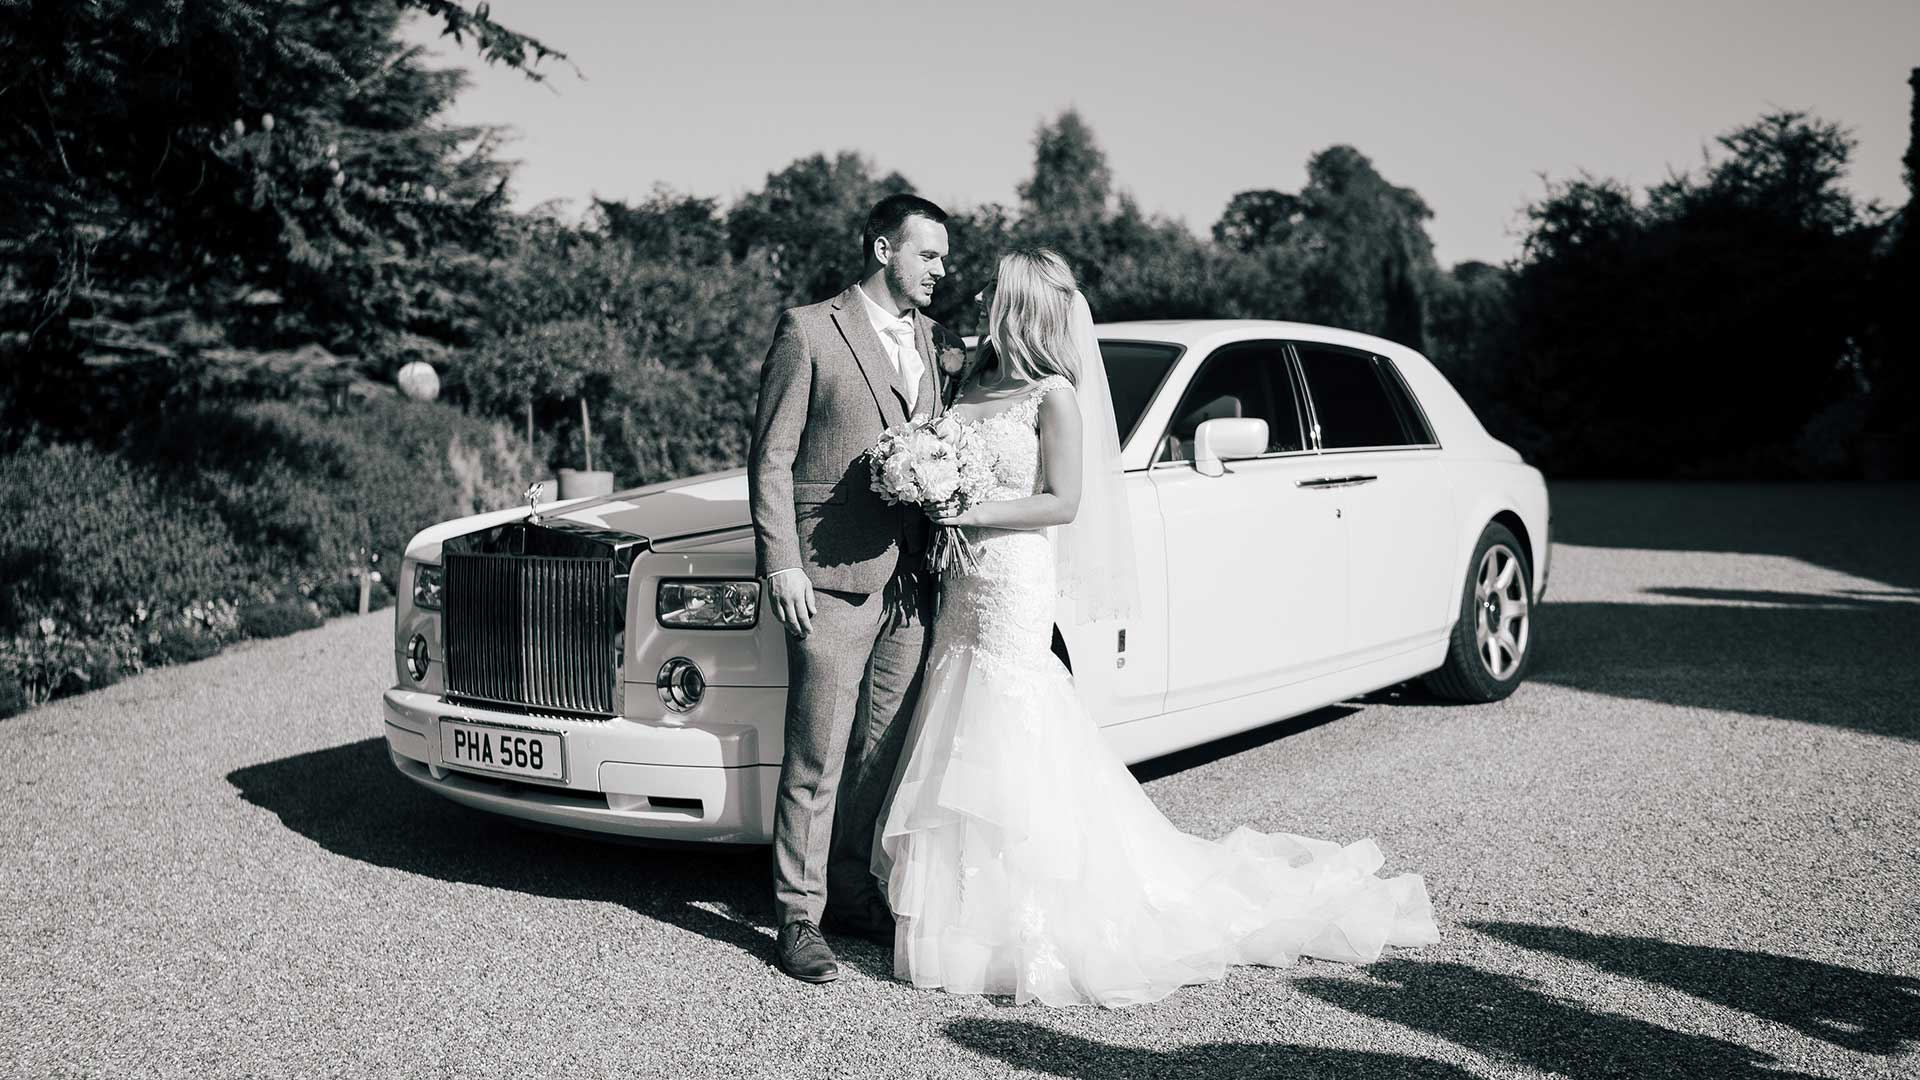 Callan and Carla with the Rolls-Royce wedding car in white